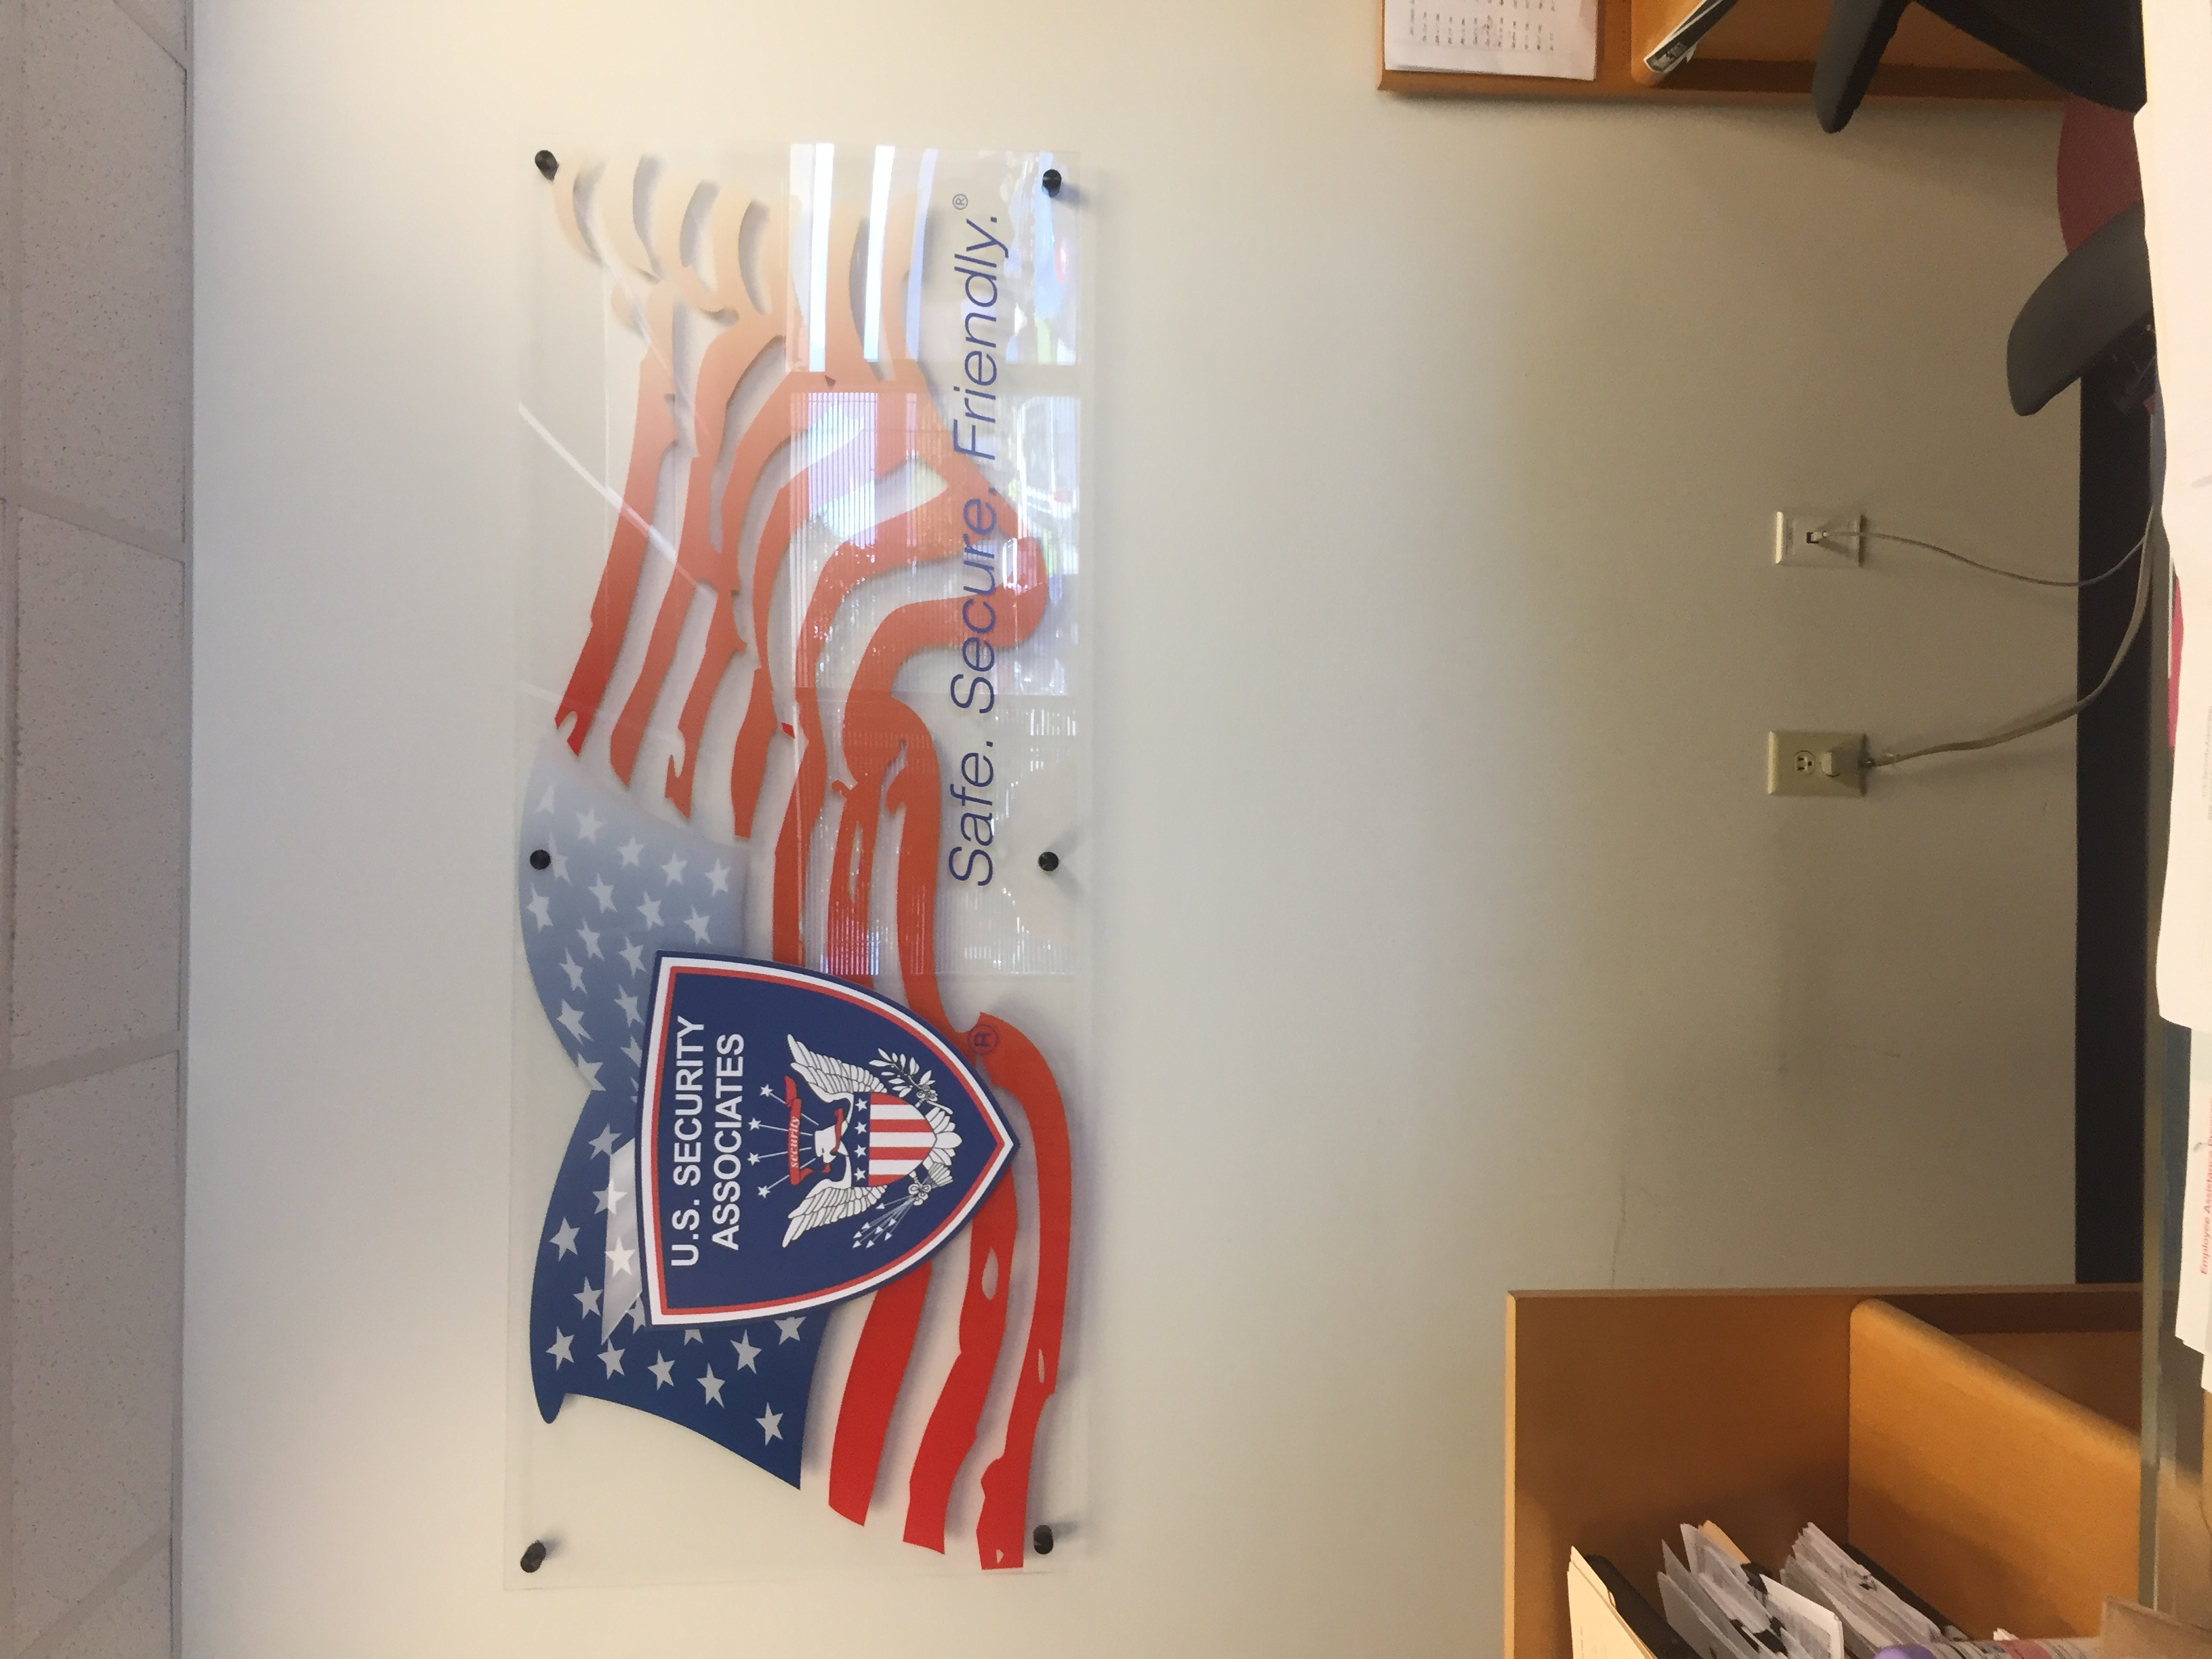 Acrylic lobby sign with stand-off hardware